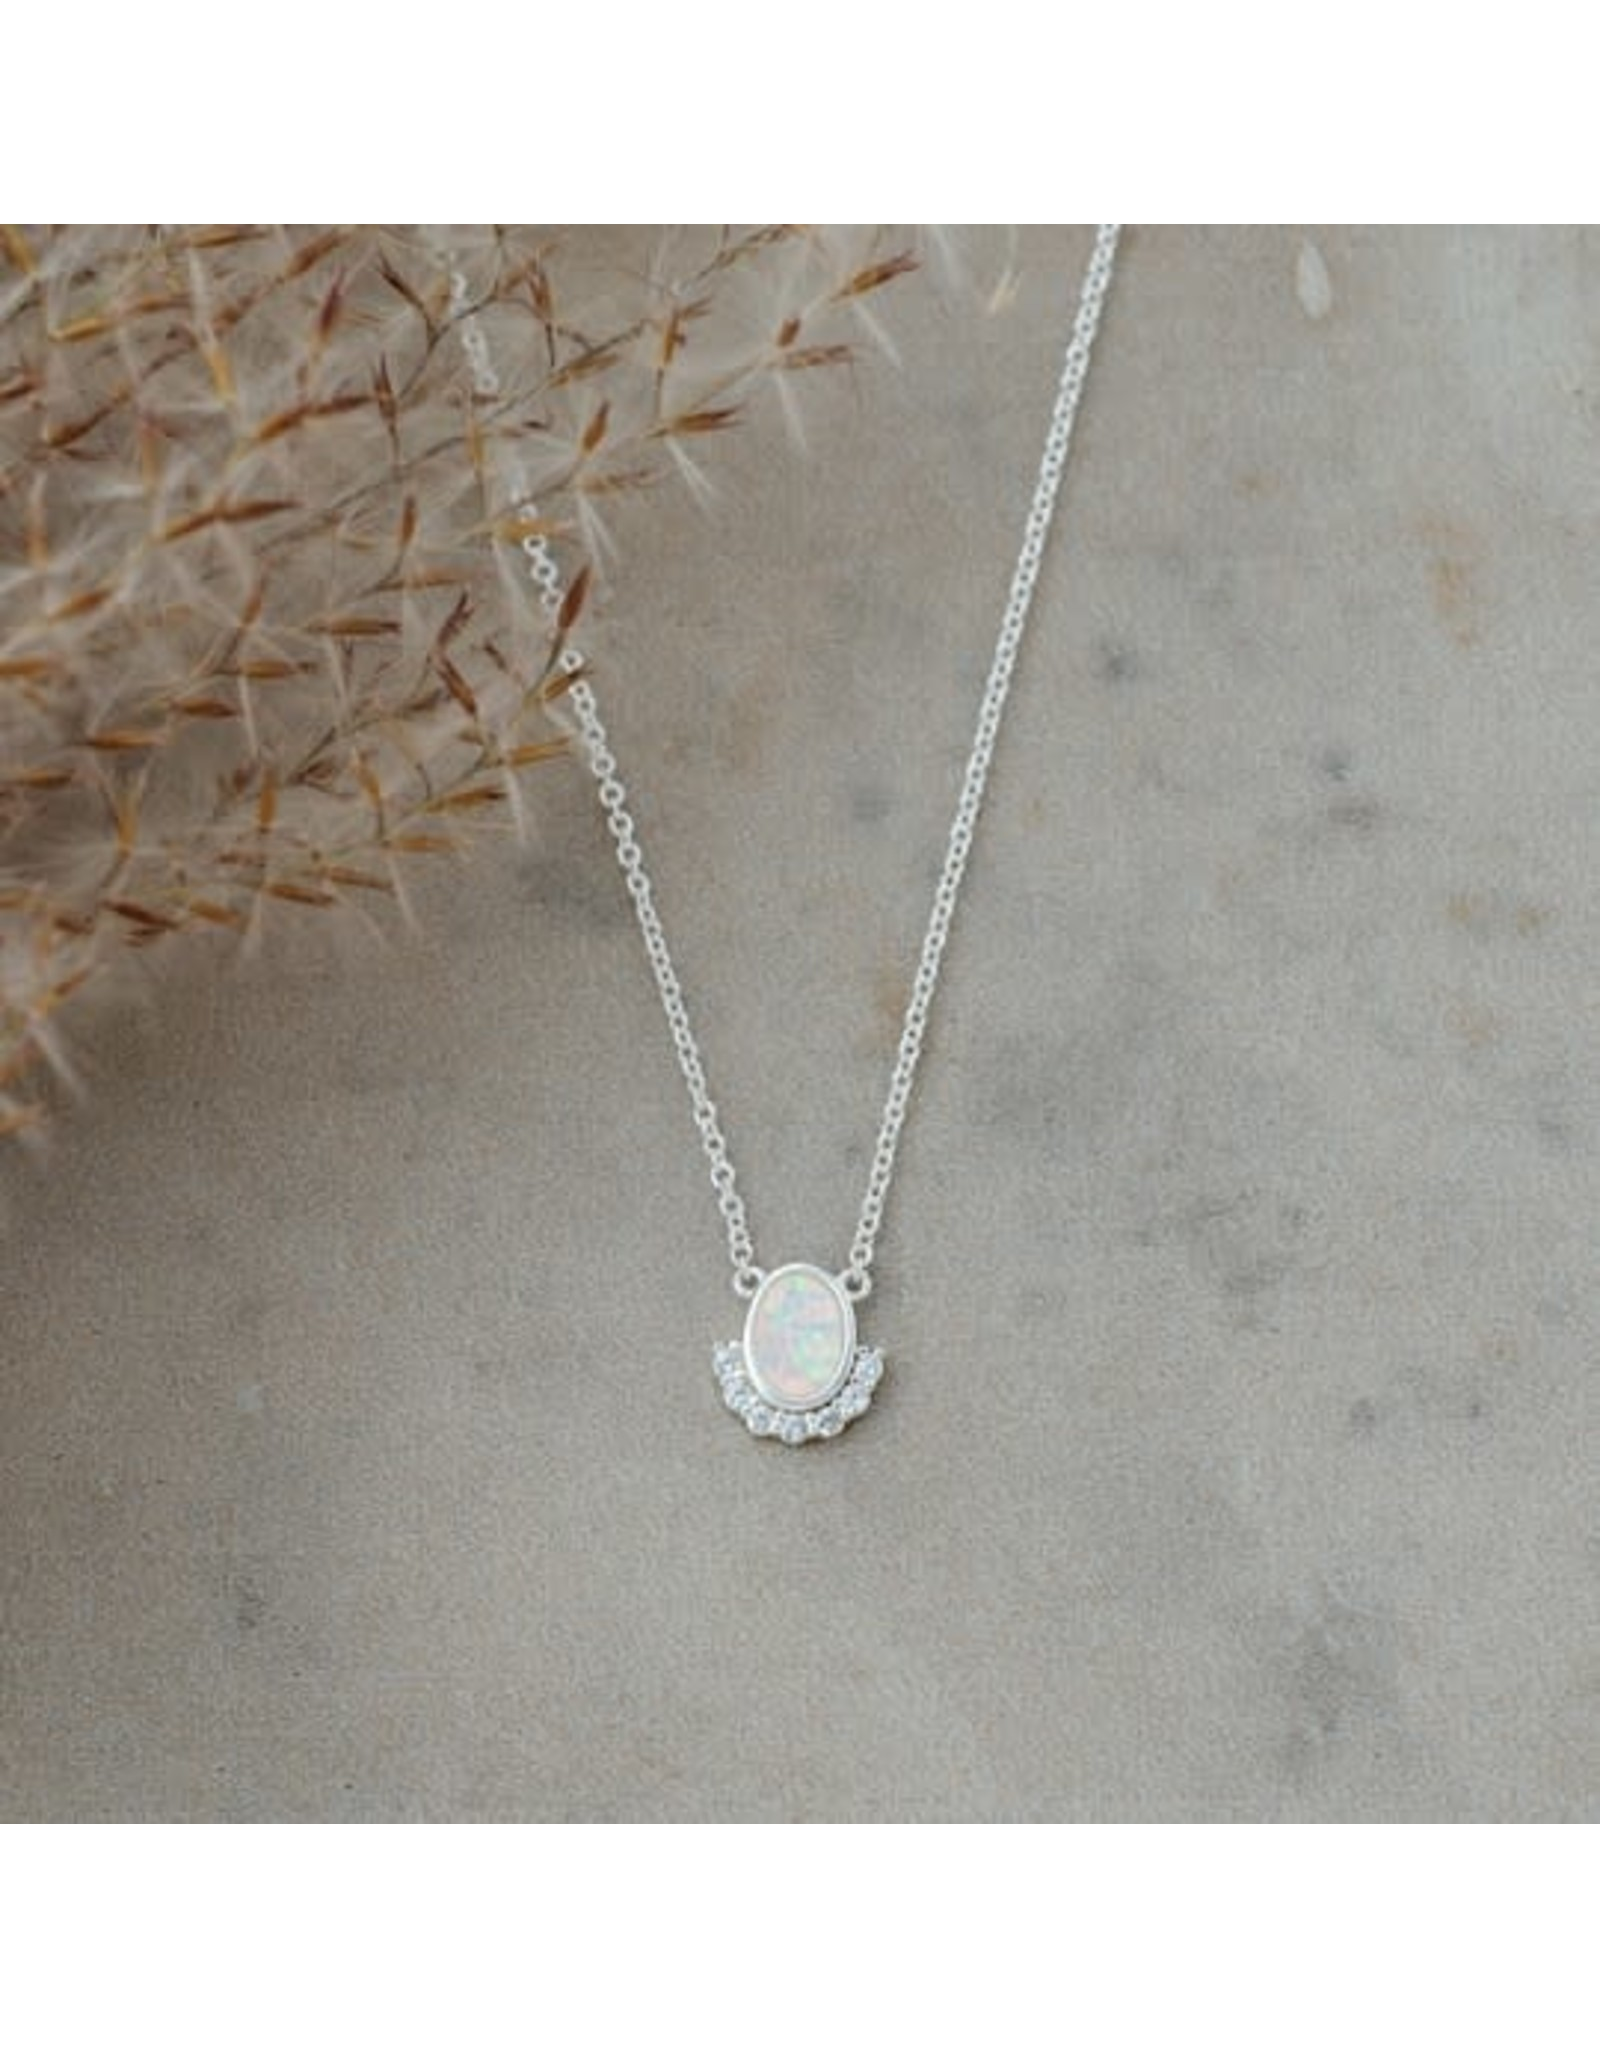 Glee jewelry Madame Necklace Silver/White Opal